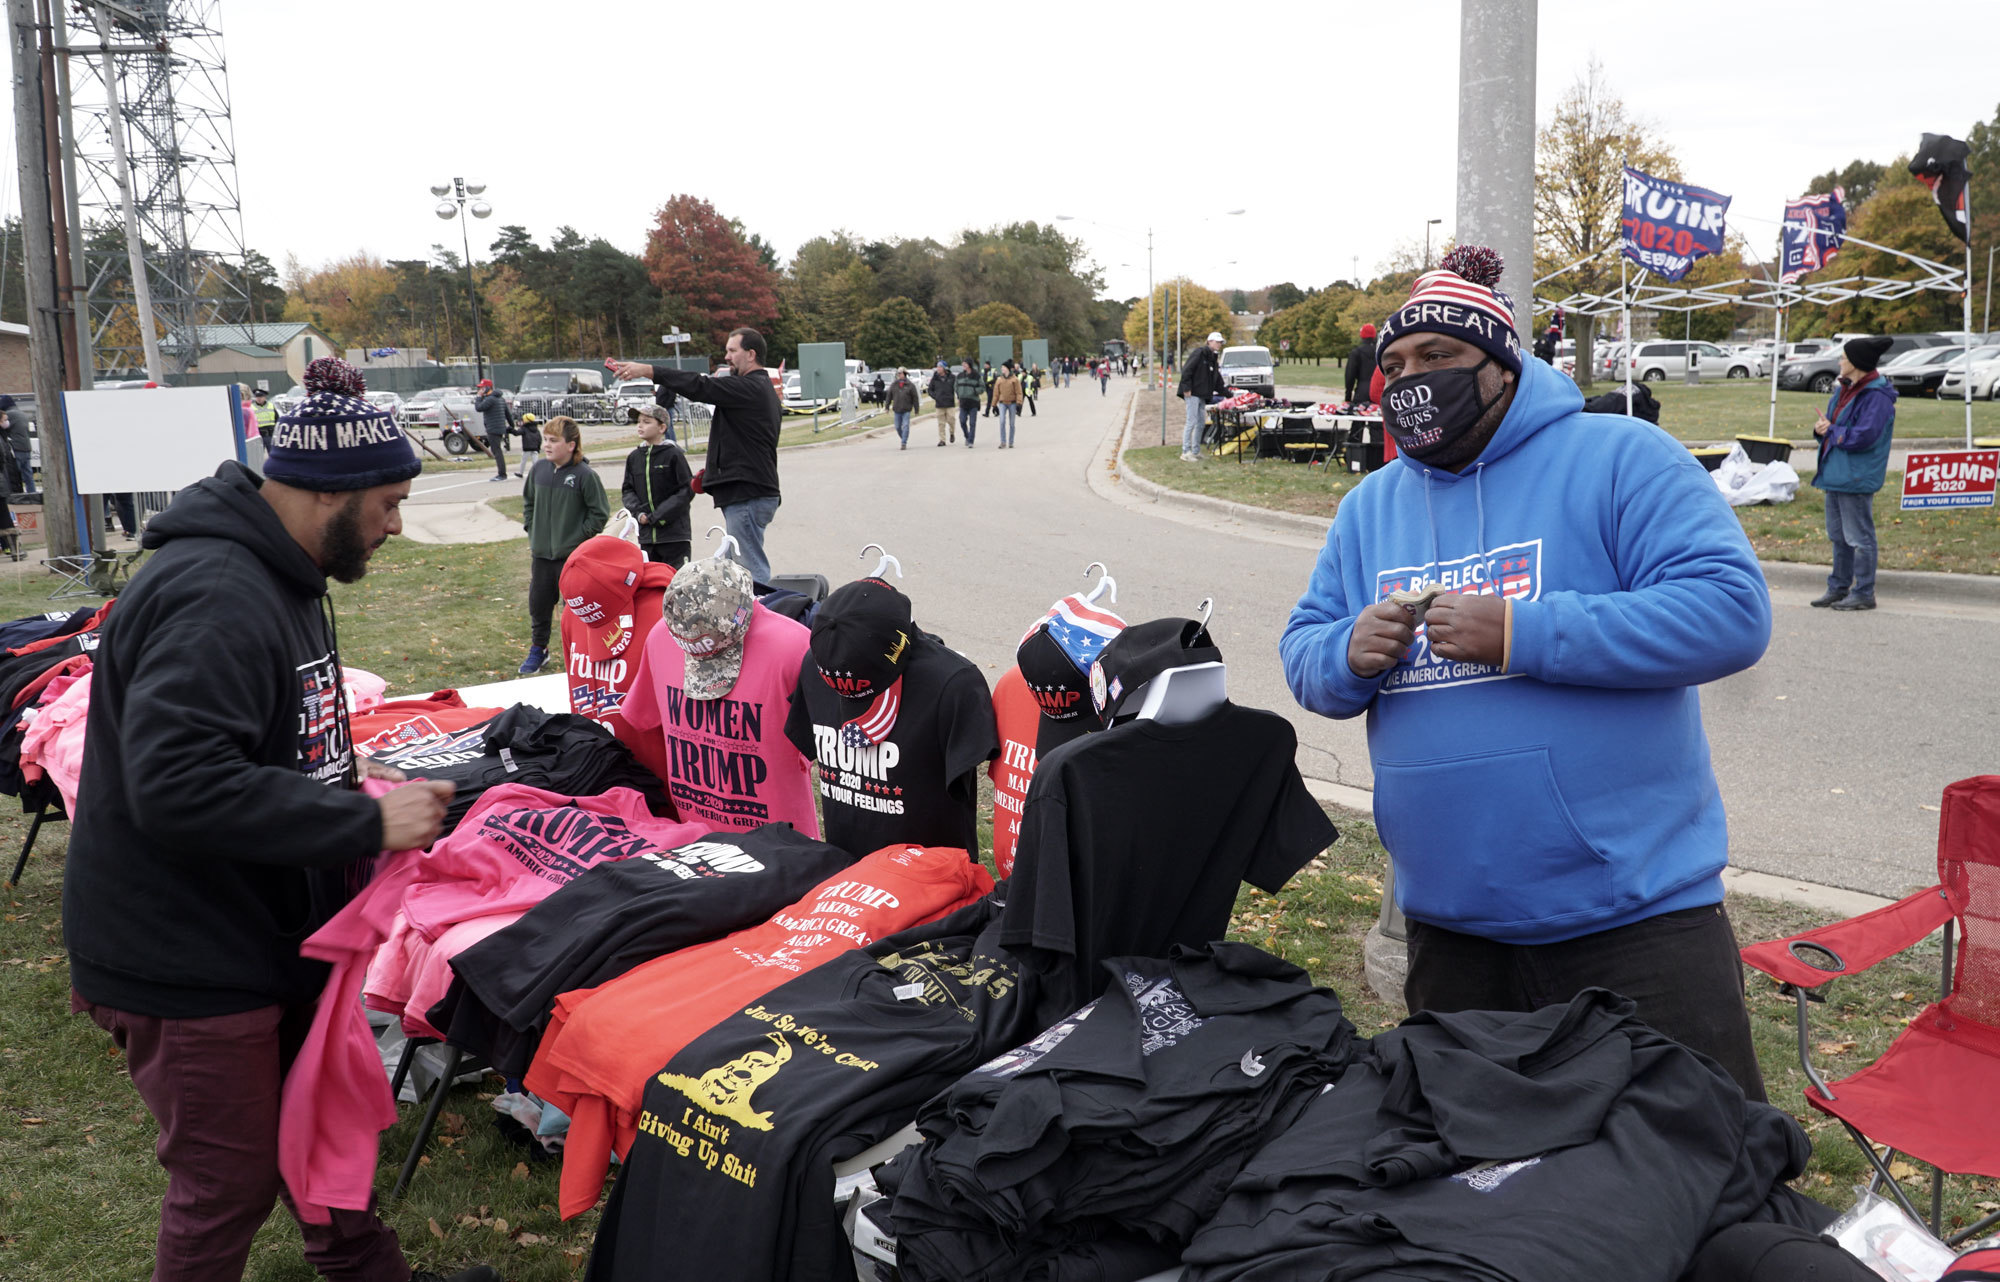 Trump swag for sale outside the Oct. 17 rally at Muskegon County Airport (Mark Gollom/CBC)